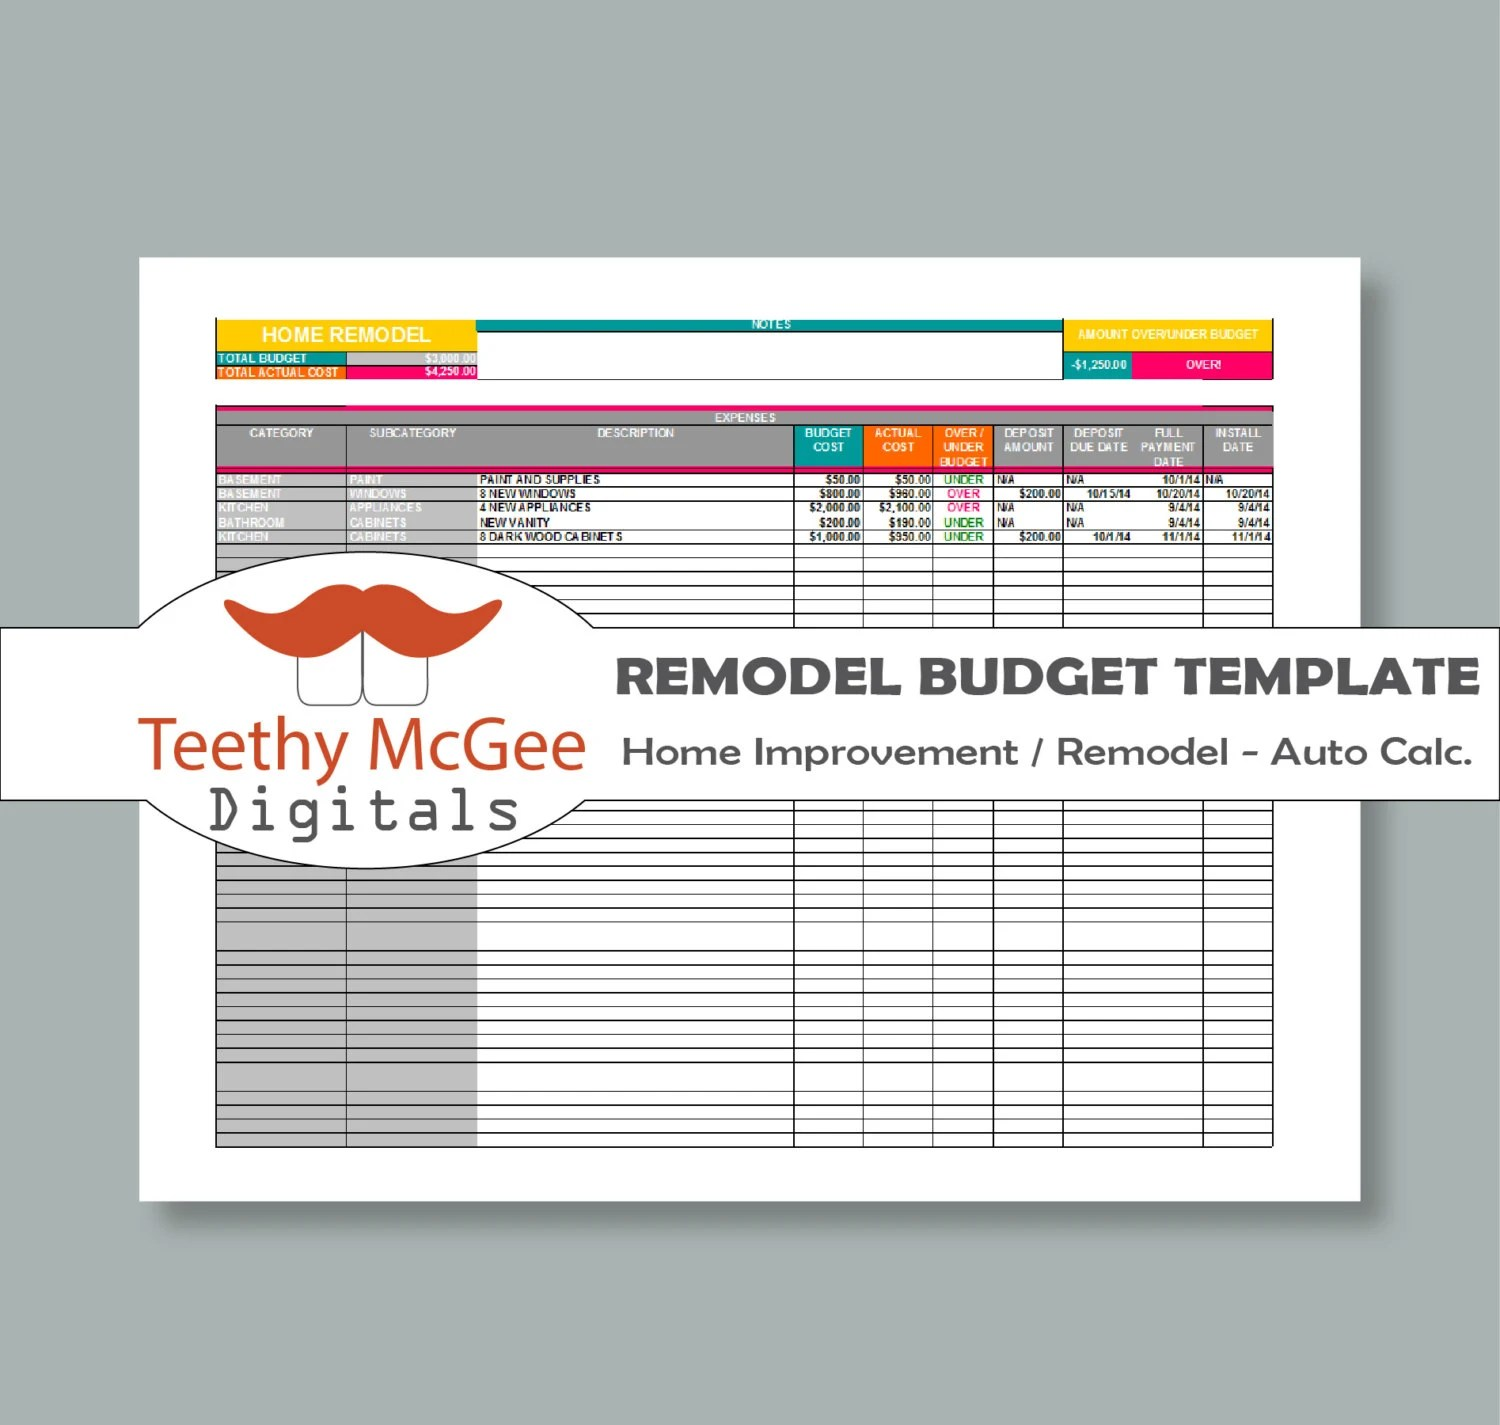 Home Improvement Remodel Budget Template Instant Download